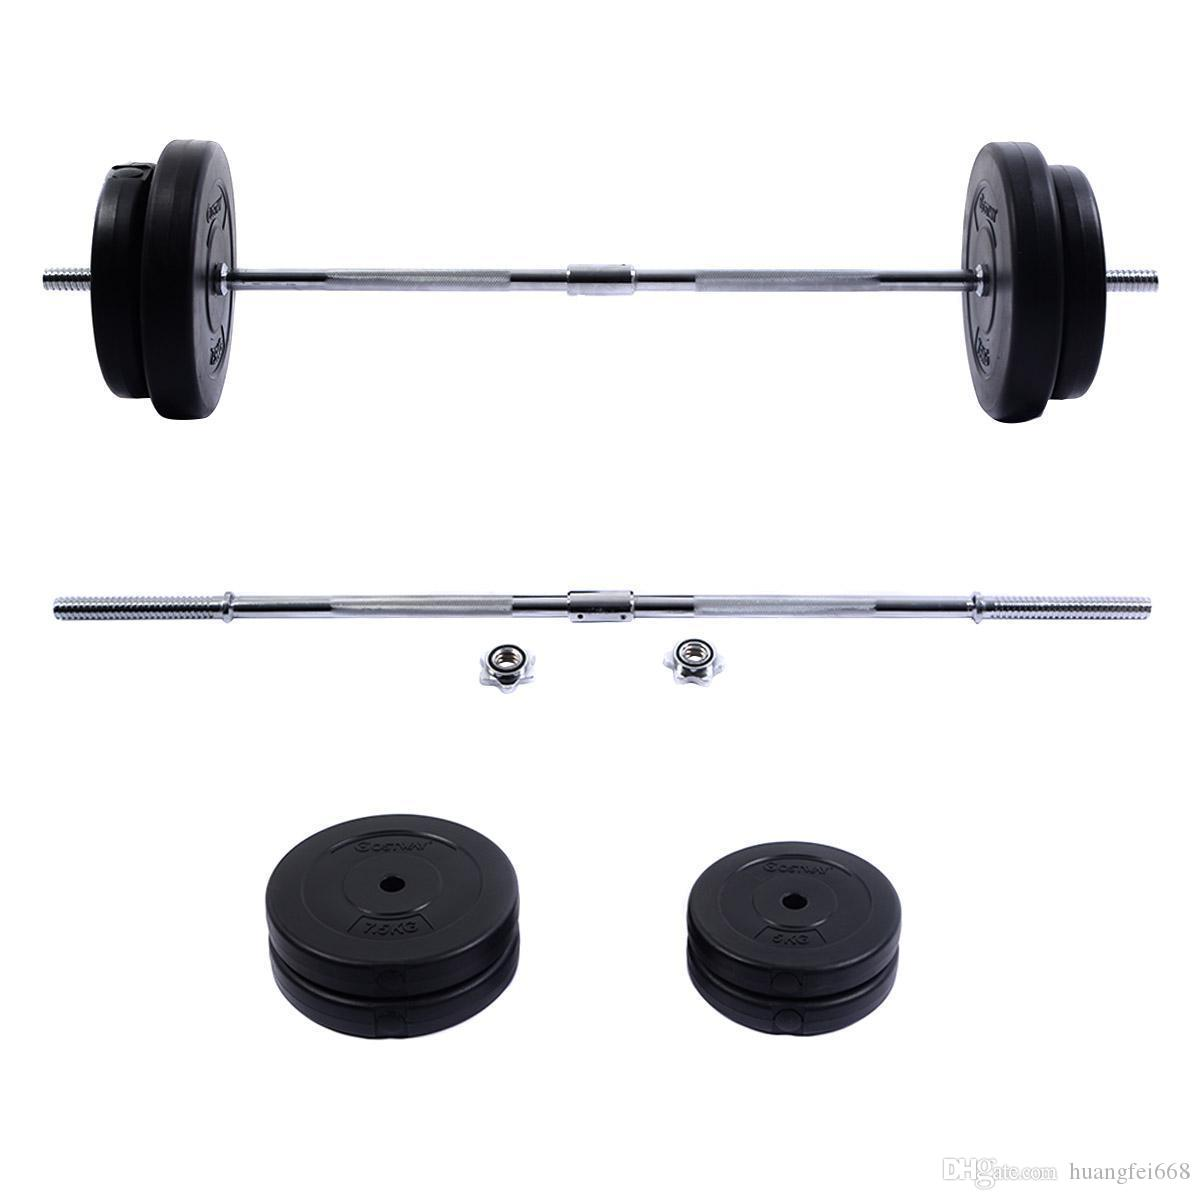 new 66 lb barbell dumbbell weight set gym lifting exercise curl bar workout dumbbell weight online with 4699piece on store dhgatecom